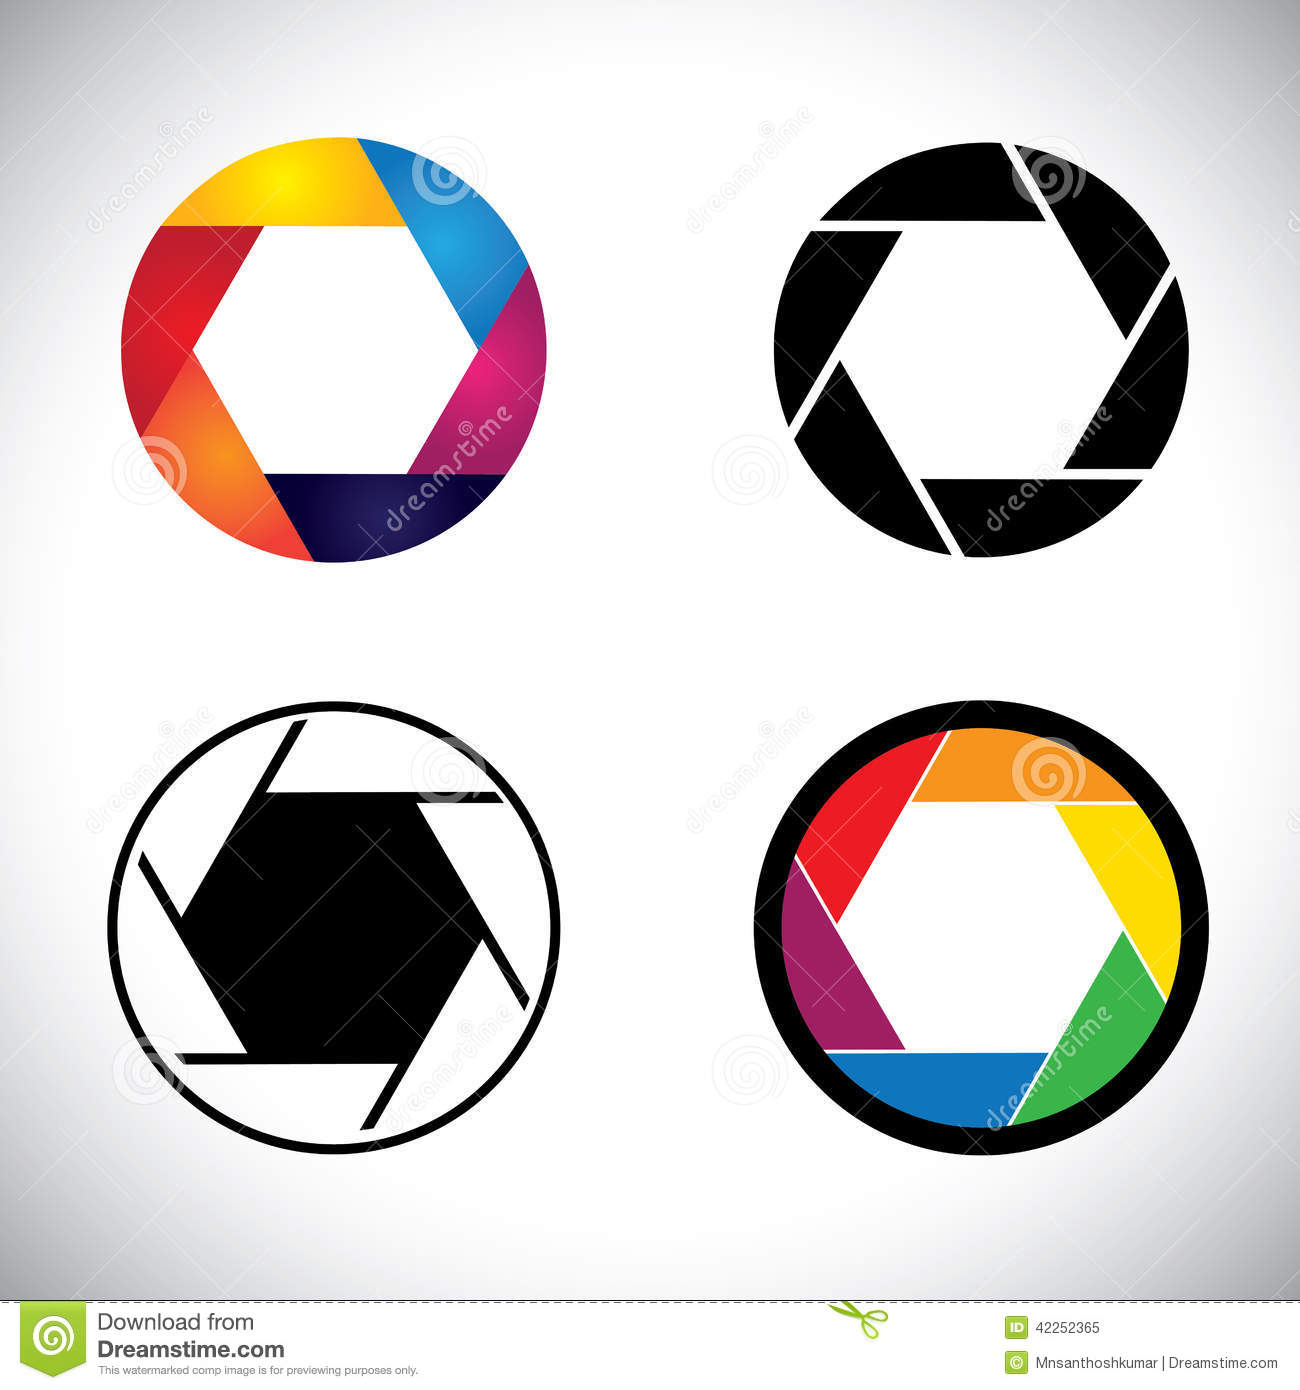 Camera lens shutter aperture abstract icons  vector graphic. This